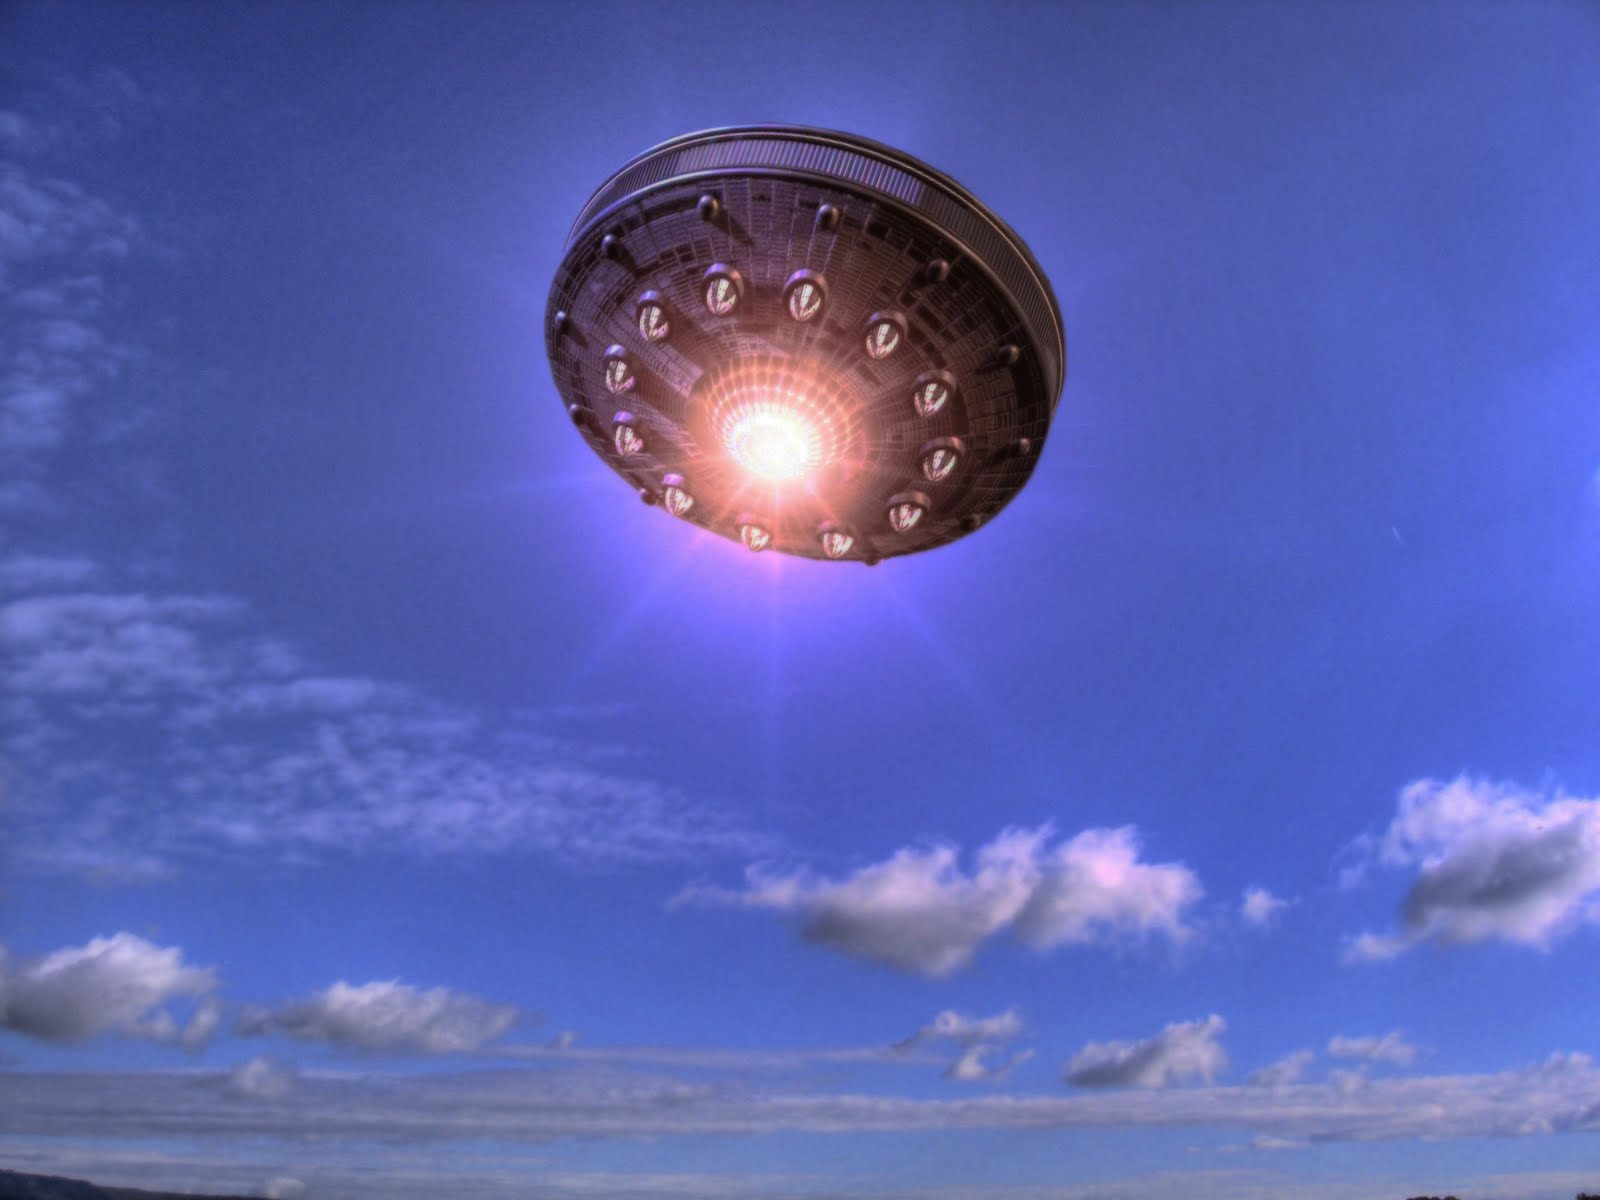 the history of the ufo sightings A timeline of ufo sightings events unidentified object reported to have crashed in shag harbor at least a dozen persons reported seeing the row of lights descend into the water, but as yet no trace of any debris has been found either on the.